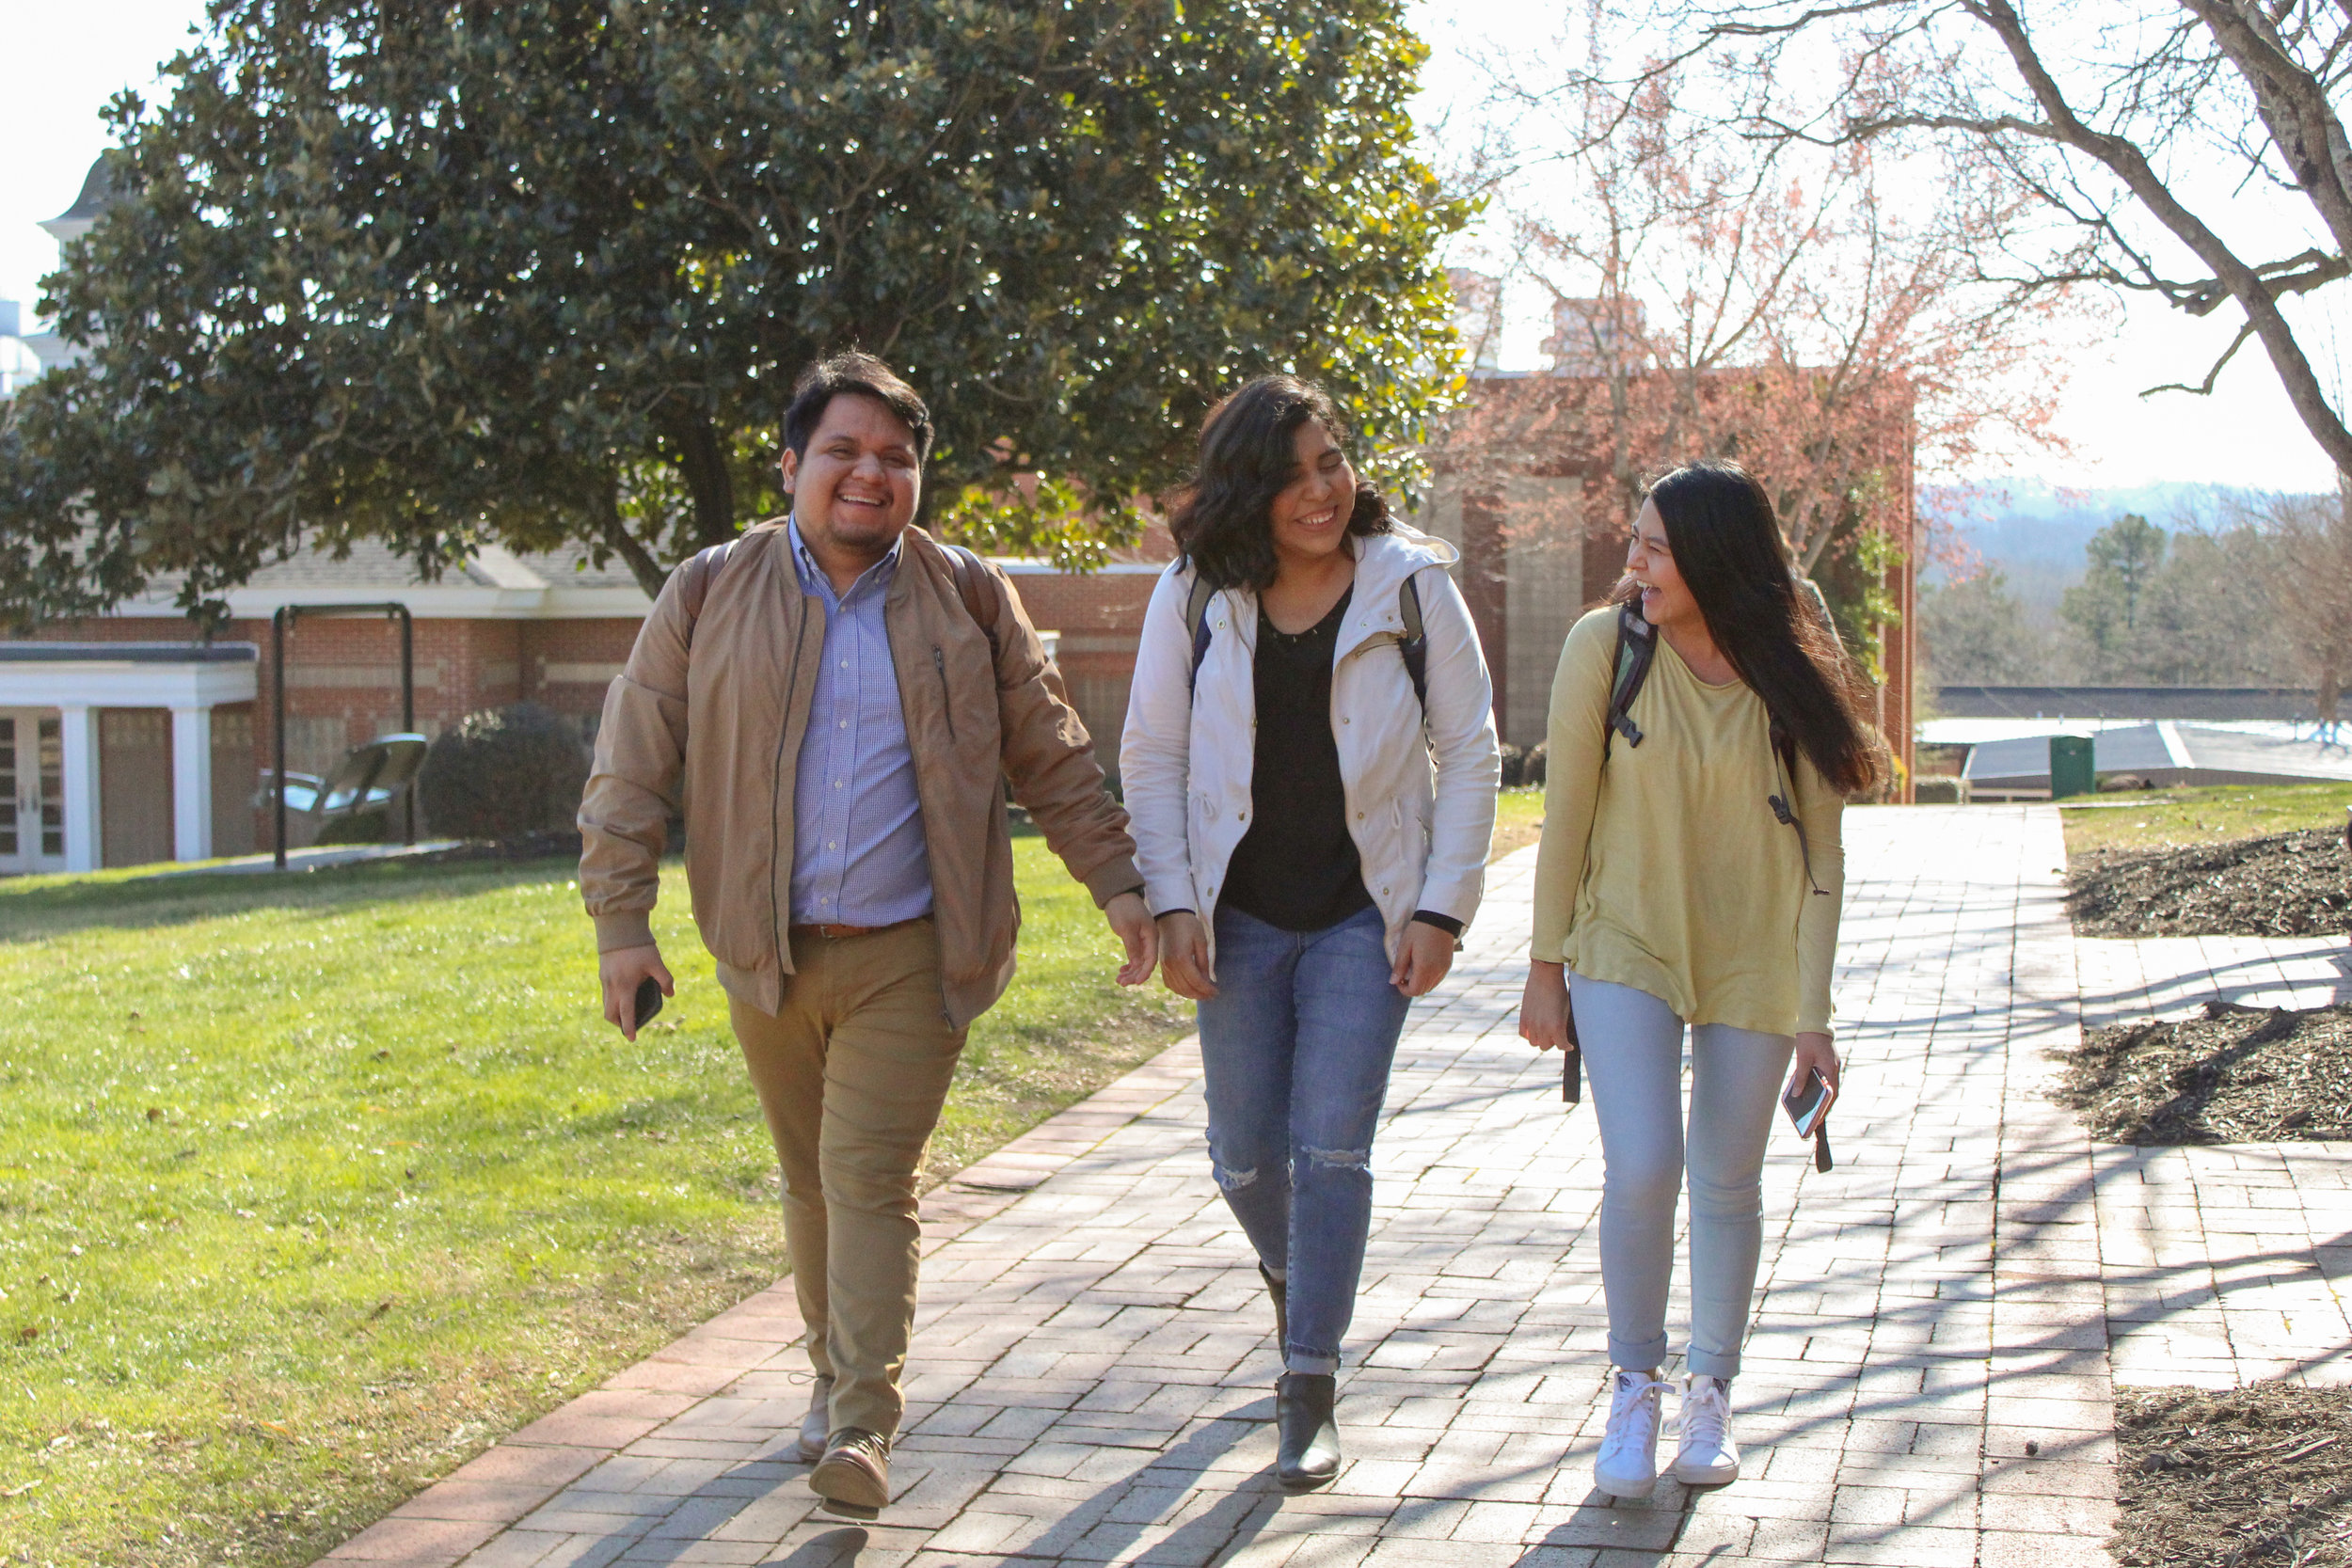 Senior Luis Travis, freshman Vanessa Martinez, and sophomore Mary Garcia catch up while walking to their next class.